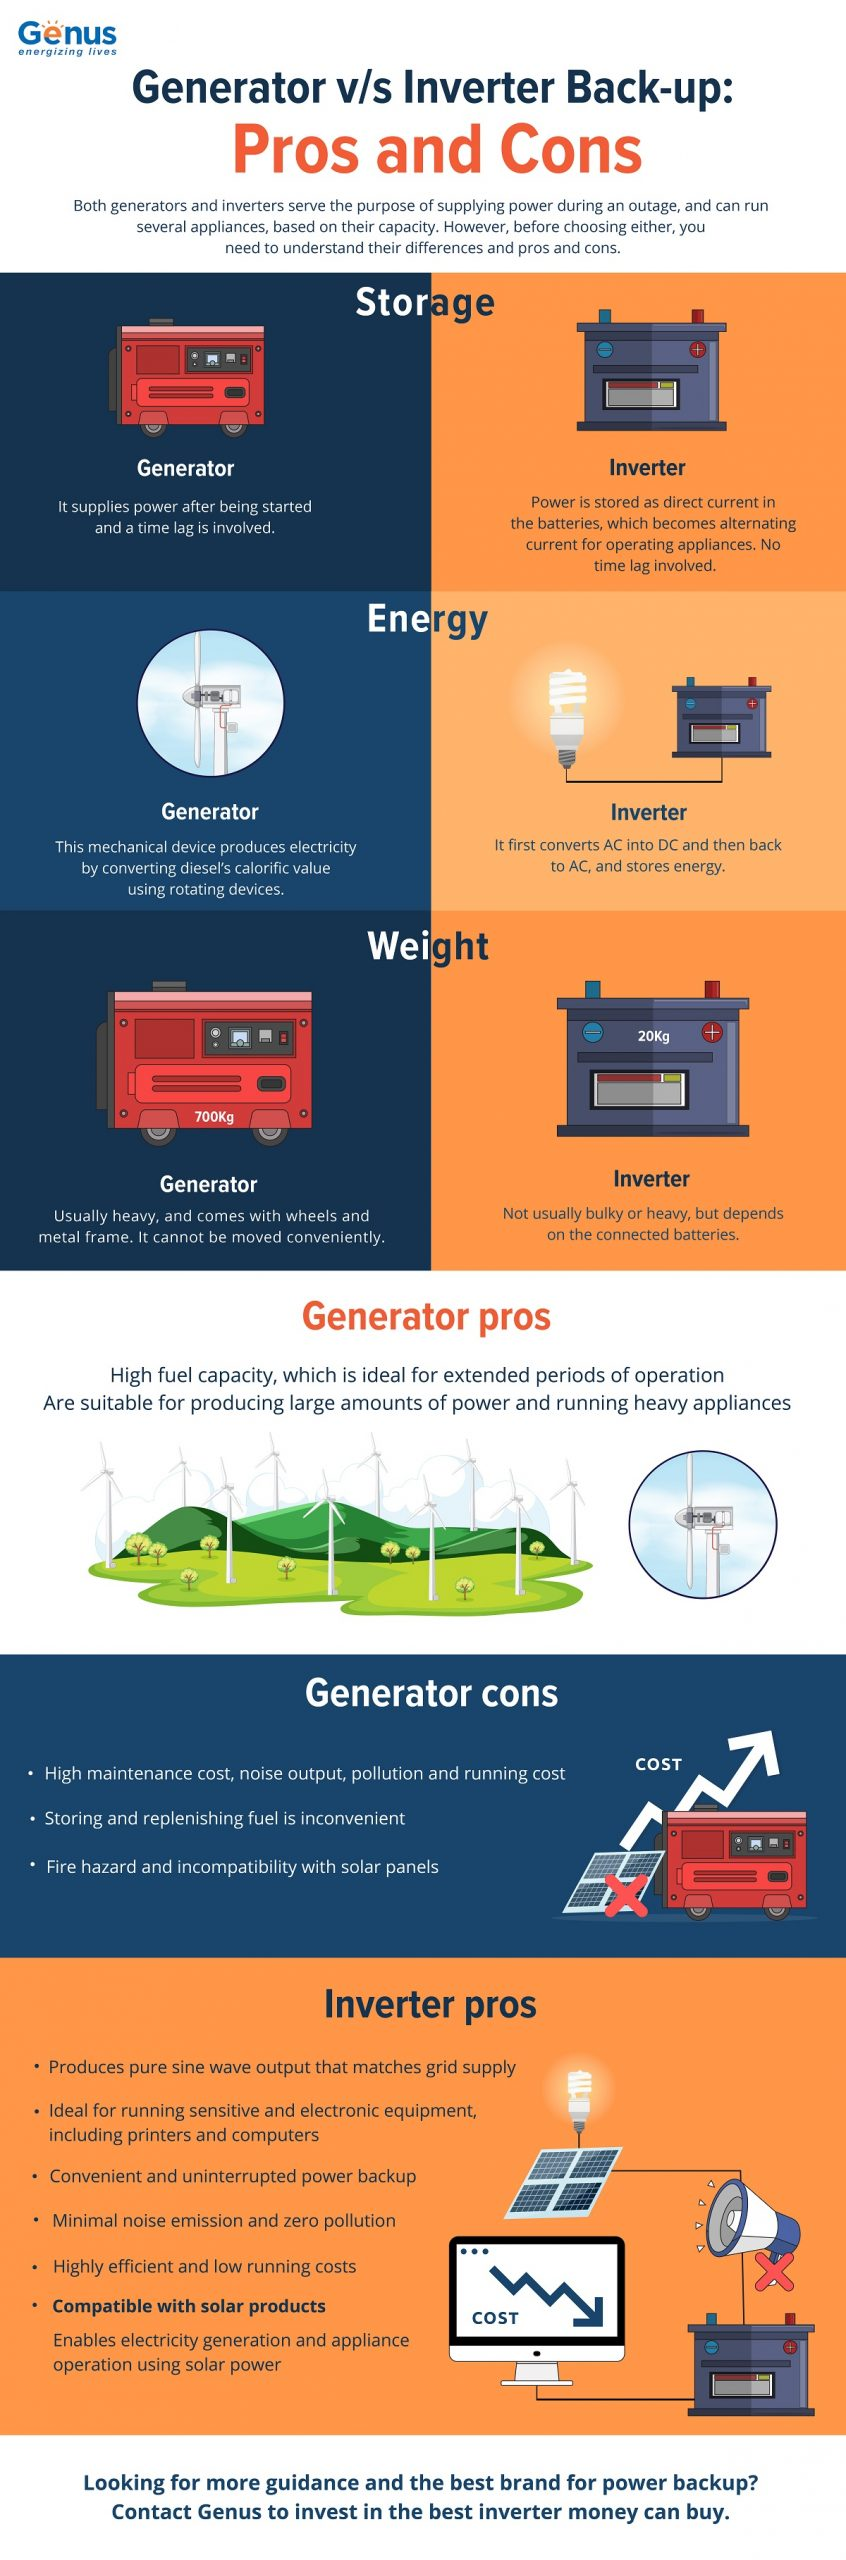 Generator vs Inverter Backup pro and cons